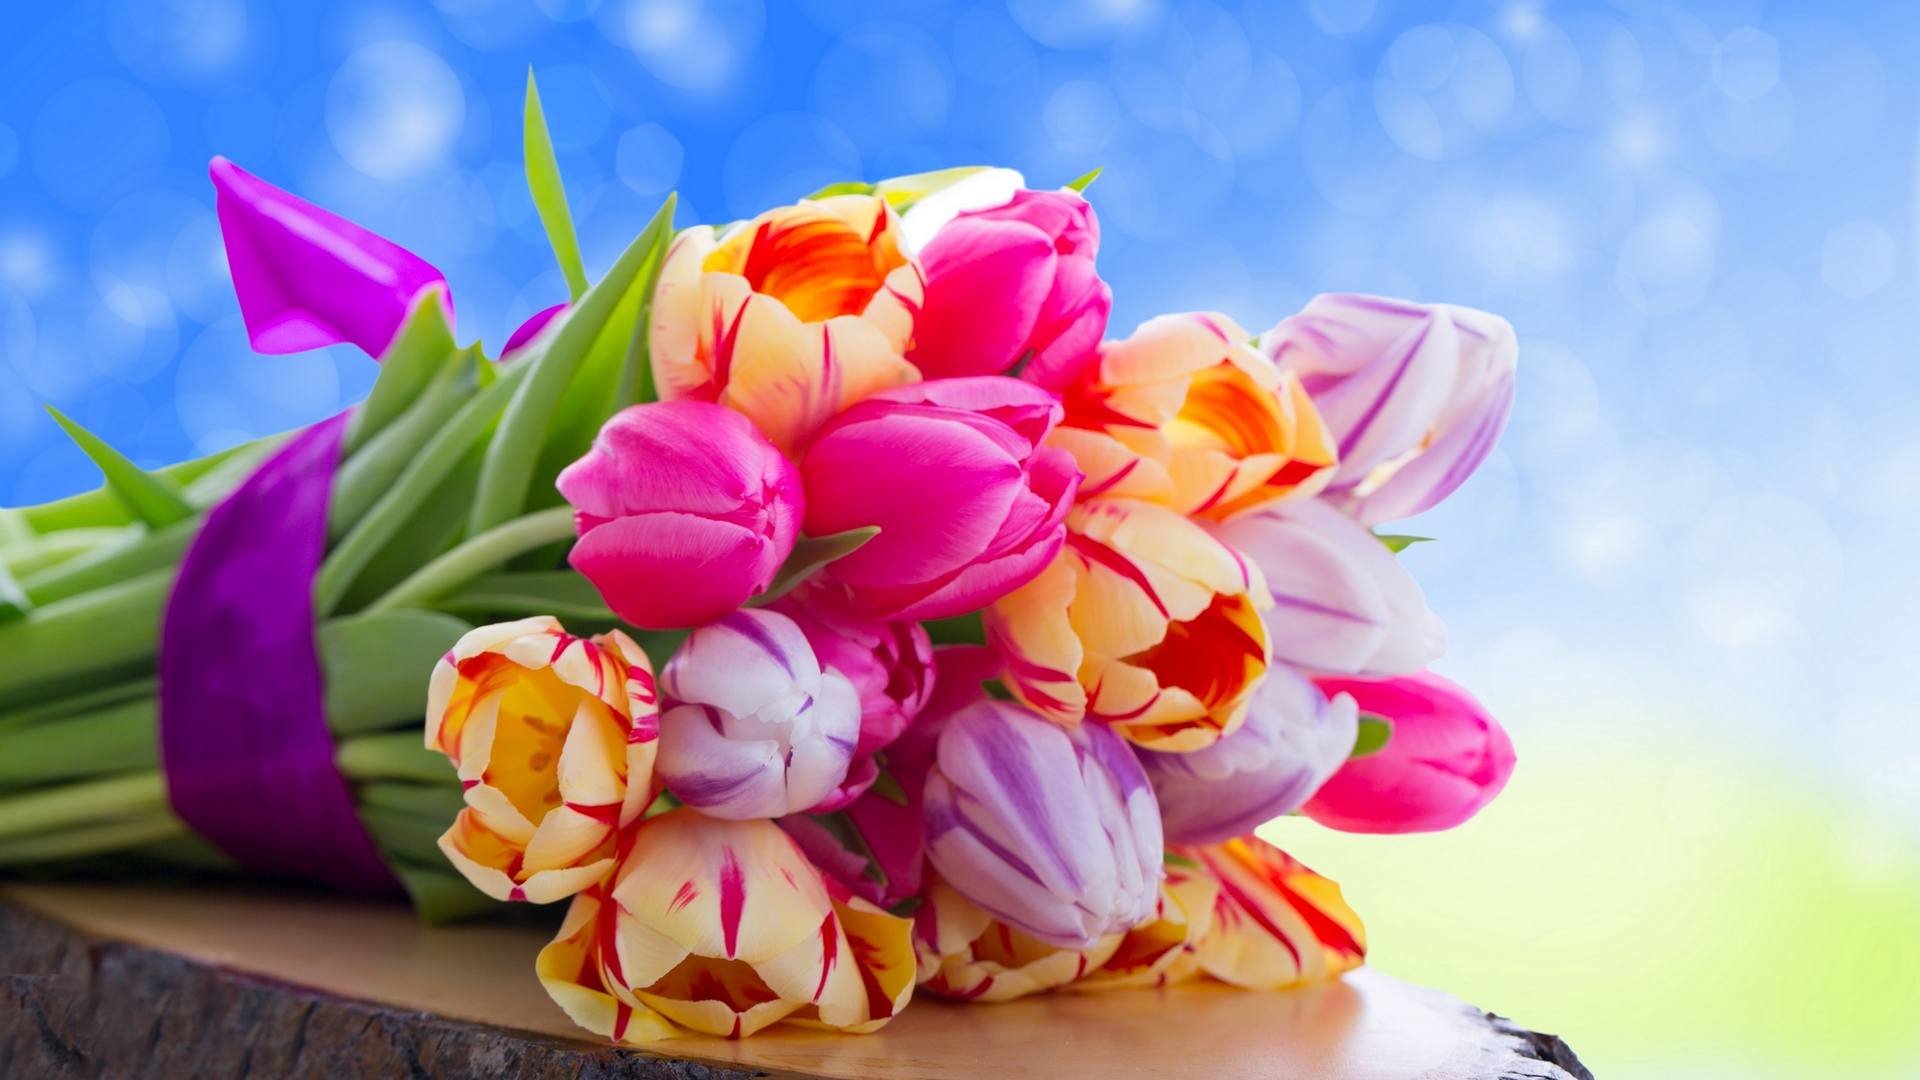 prime,hd,tulips,blossom,nosegay,efflorescence,posy,bouquet,peak,fragrance,flush,flowers,sweetness,heyday